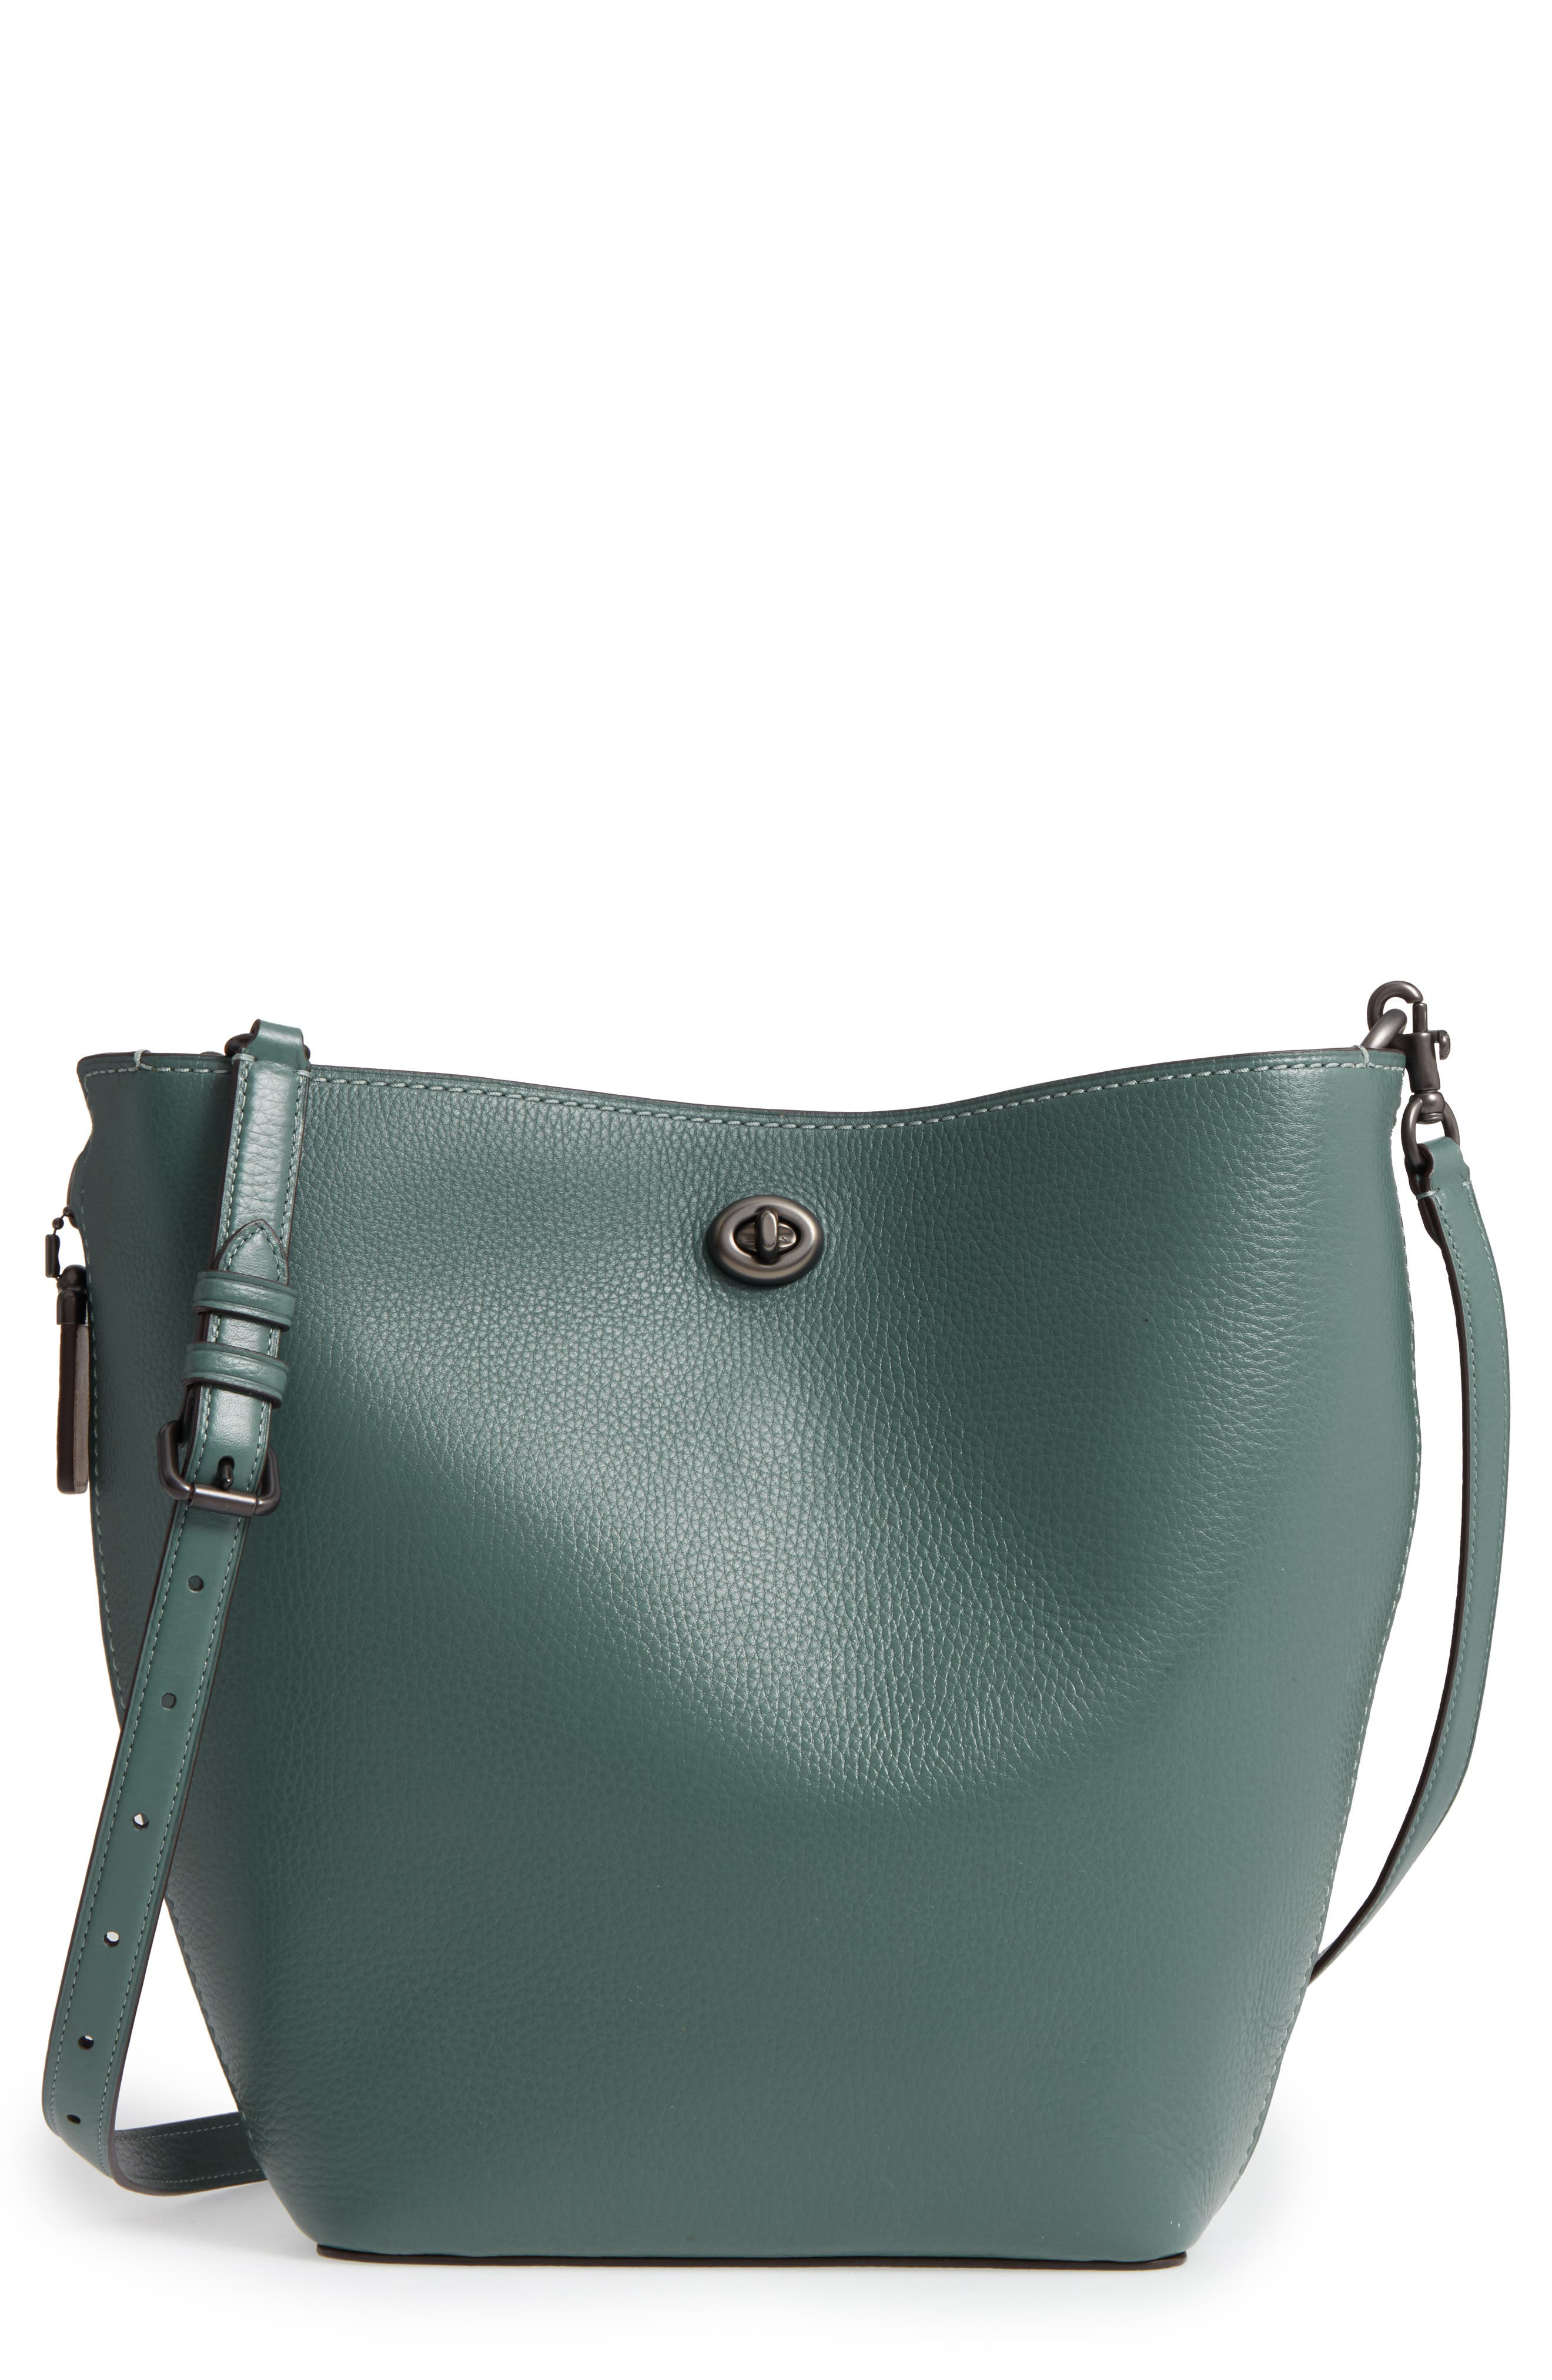 COACH 1941 Duffle Leather Tote